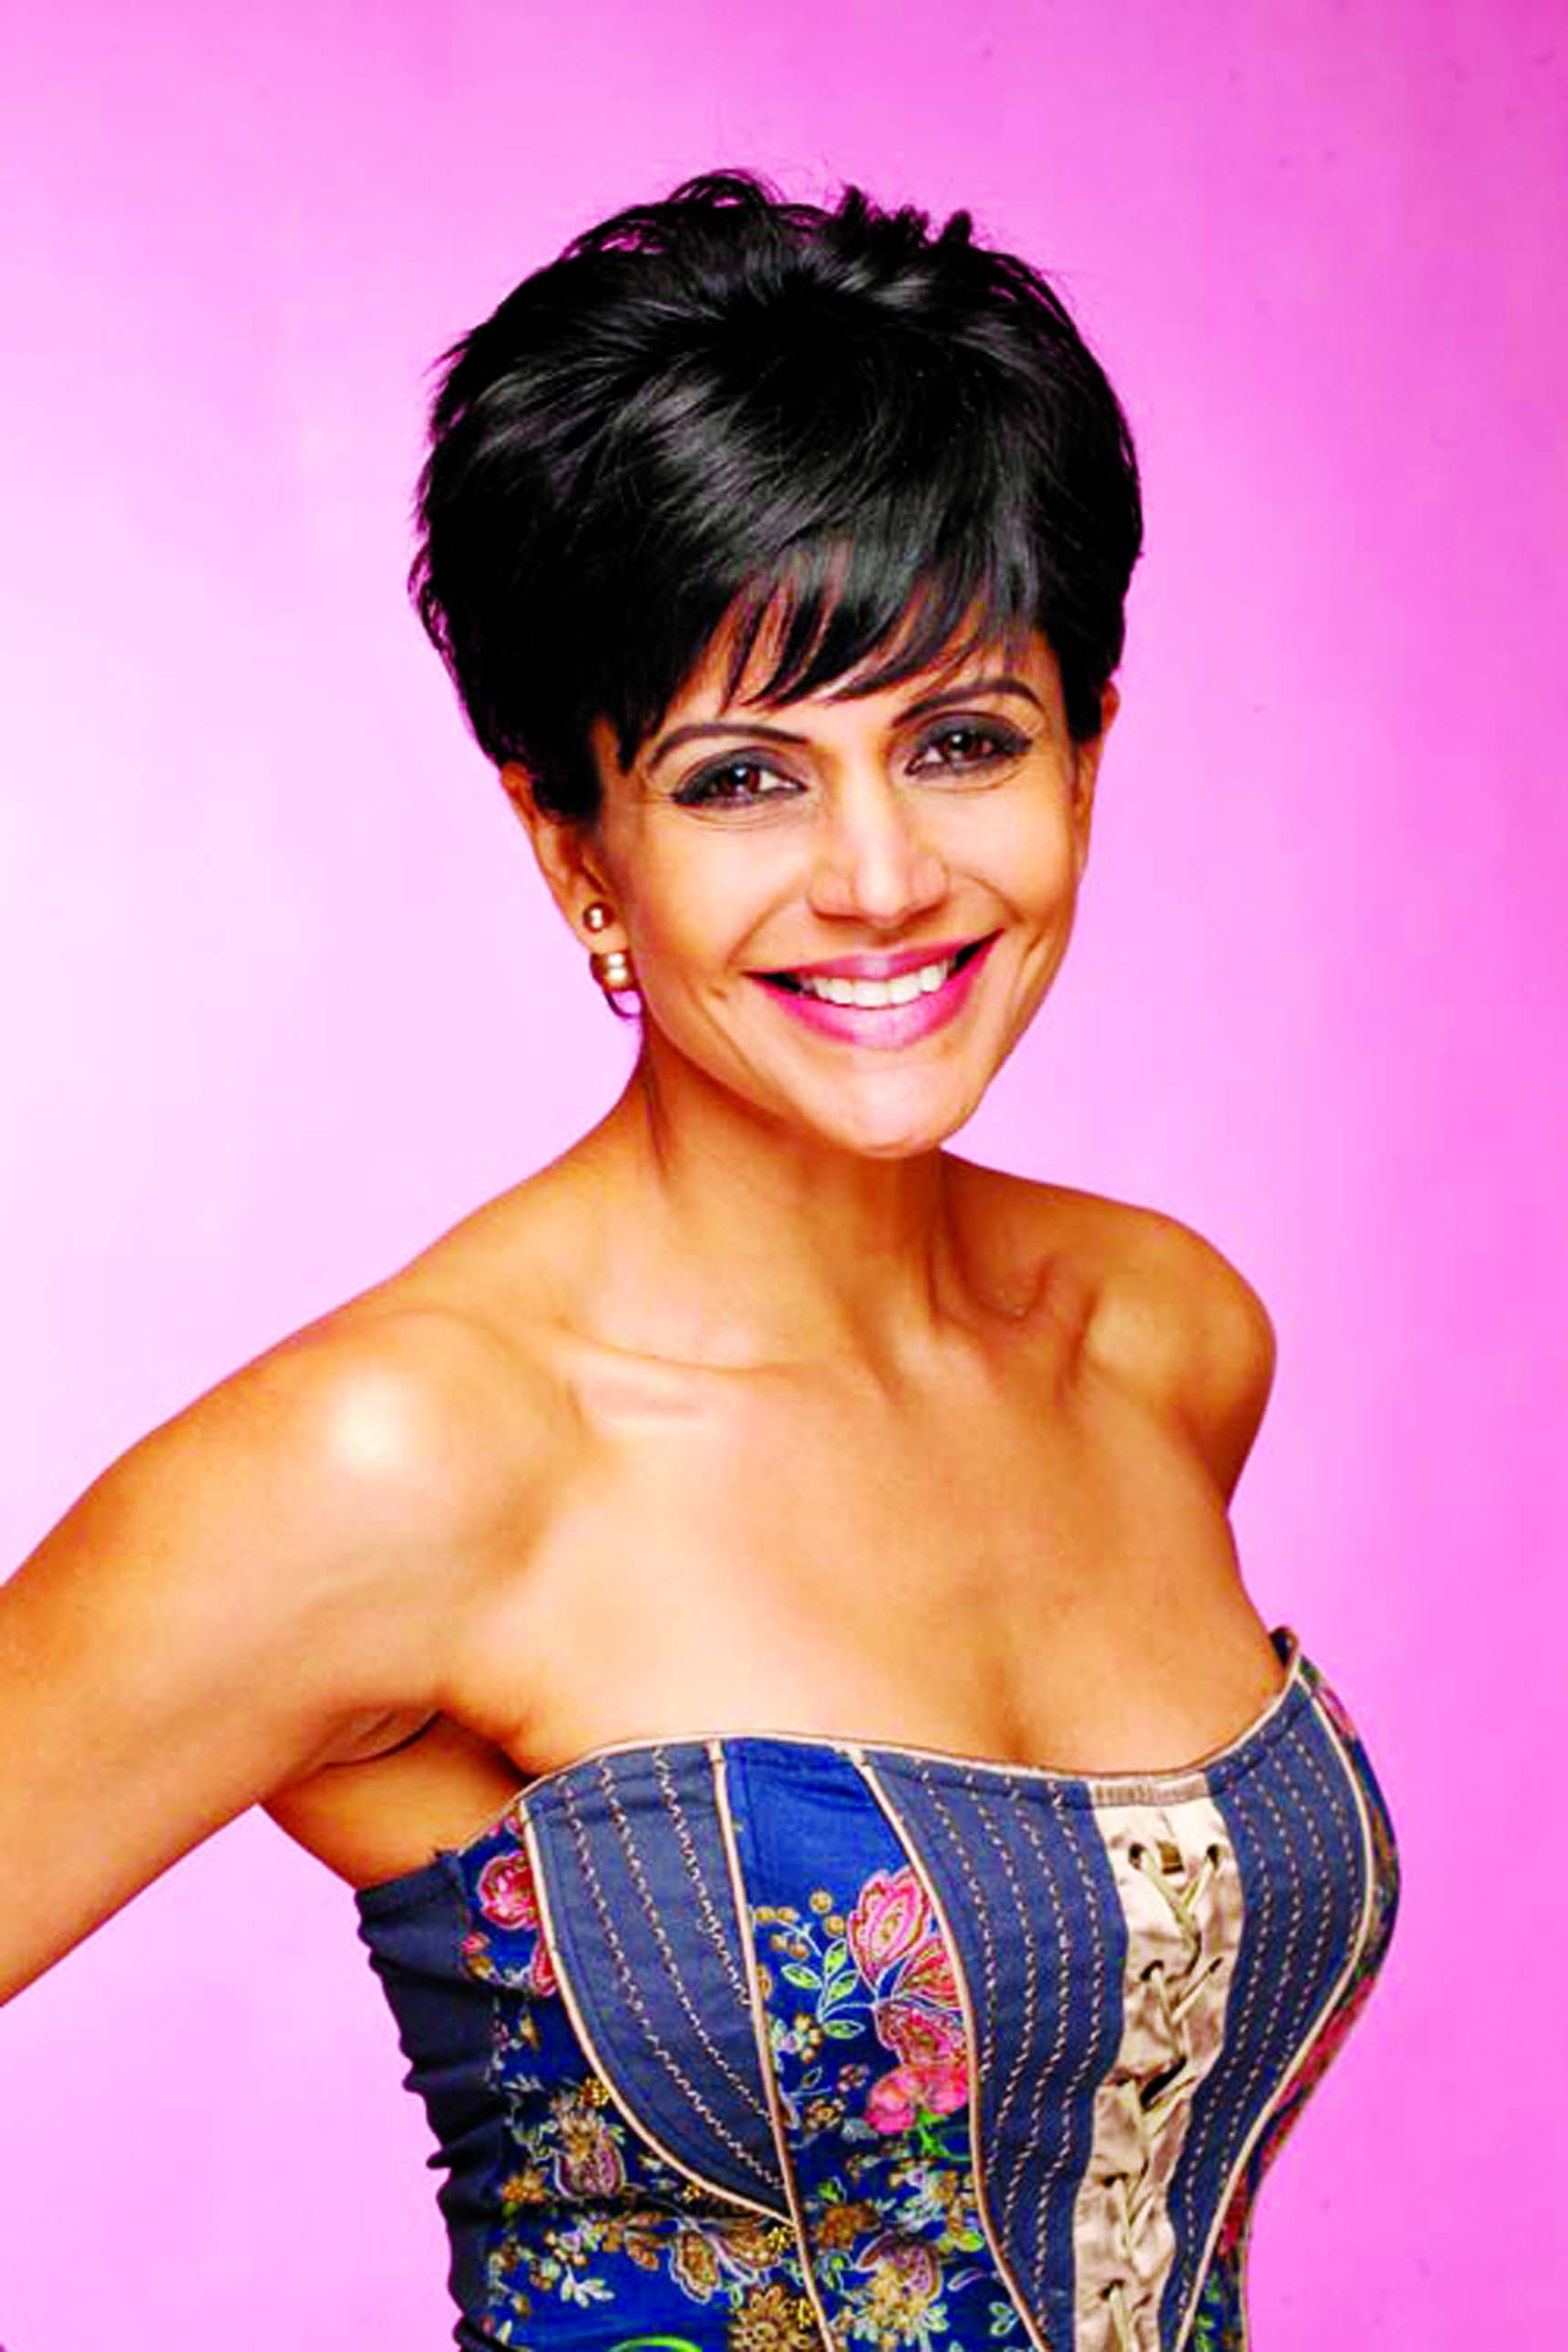 Mandira Bedi's next short film as an edgy girlfriend